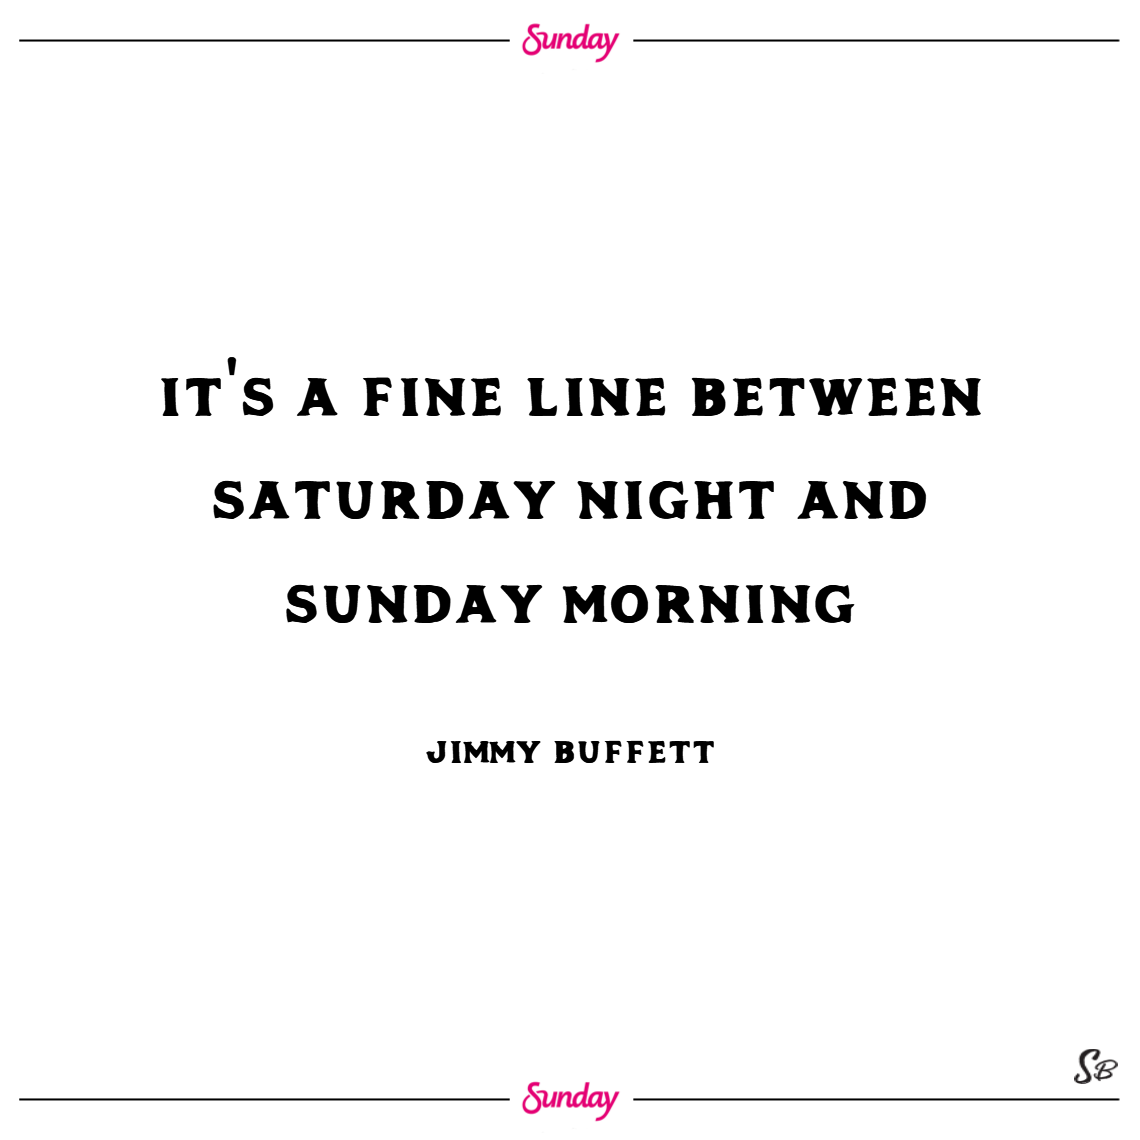 It's a fine line between saturday night and sunday morning. – jimmy buffett